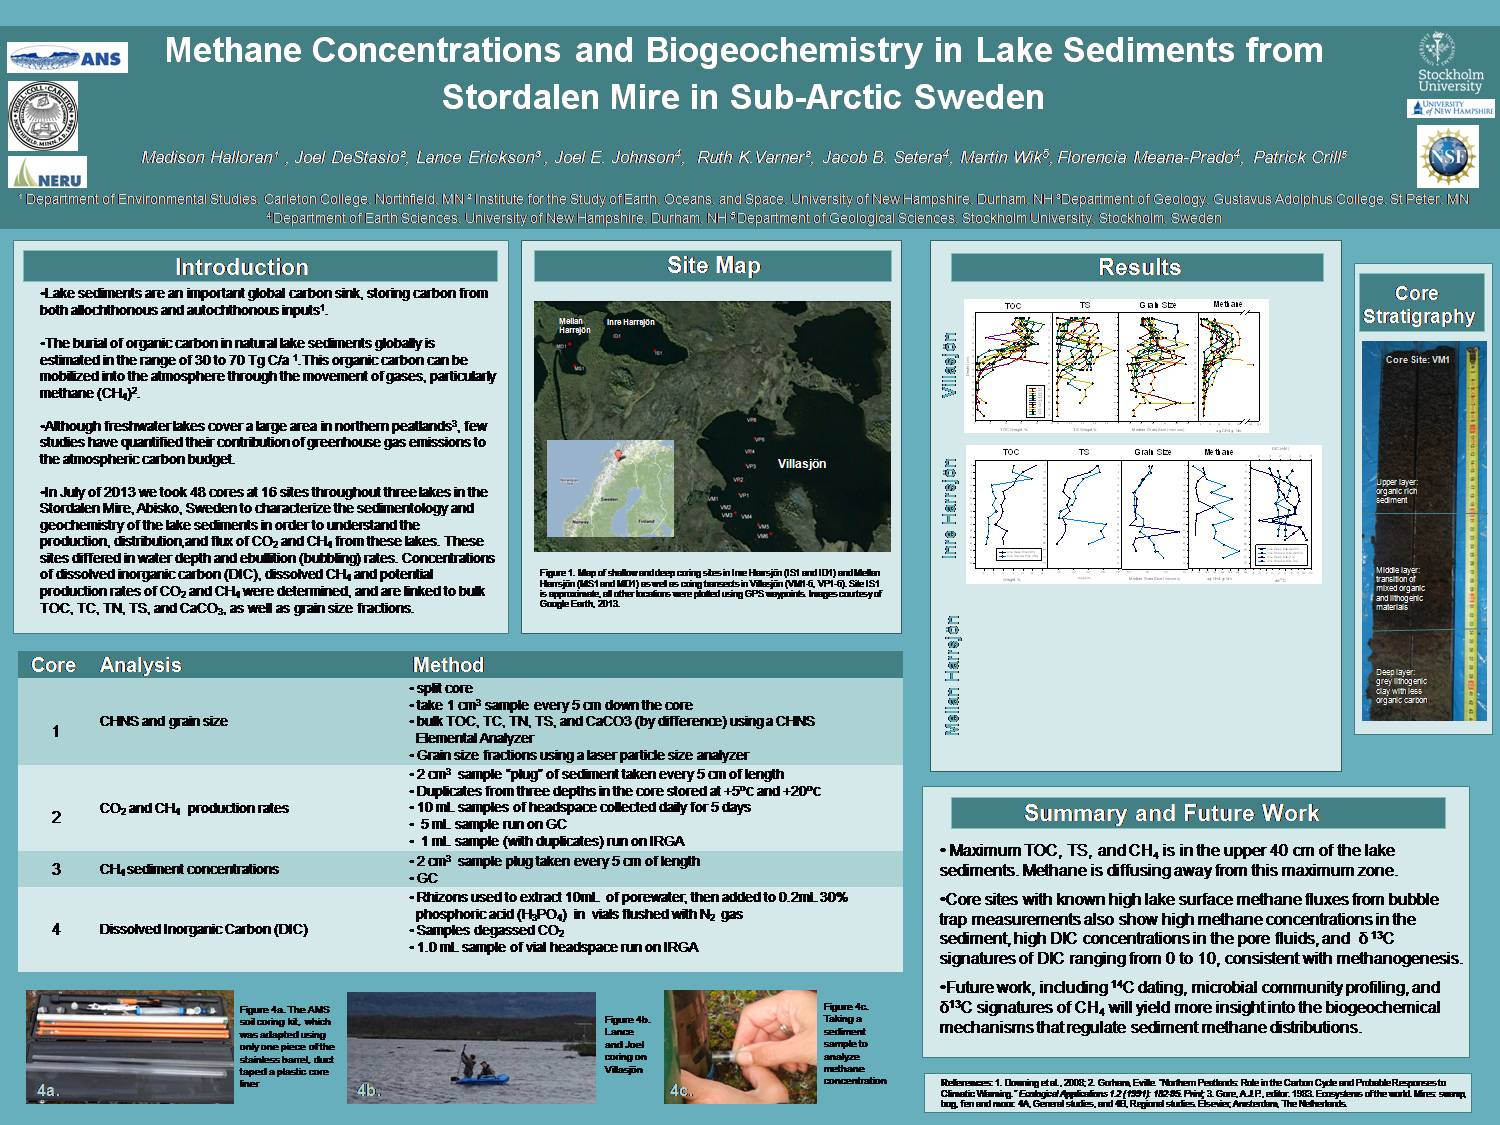 Methane Concentrations And Biogeochemistry In Lake Sediments From Stordalen Mire In Sub-Arctic Sweden  by halloram